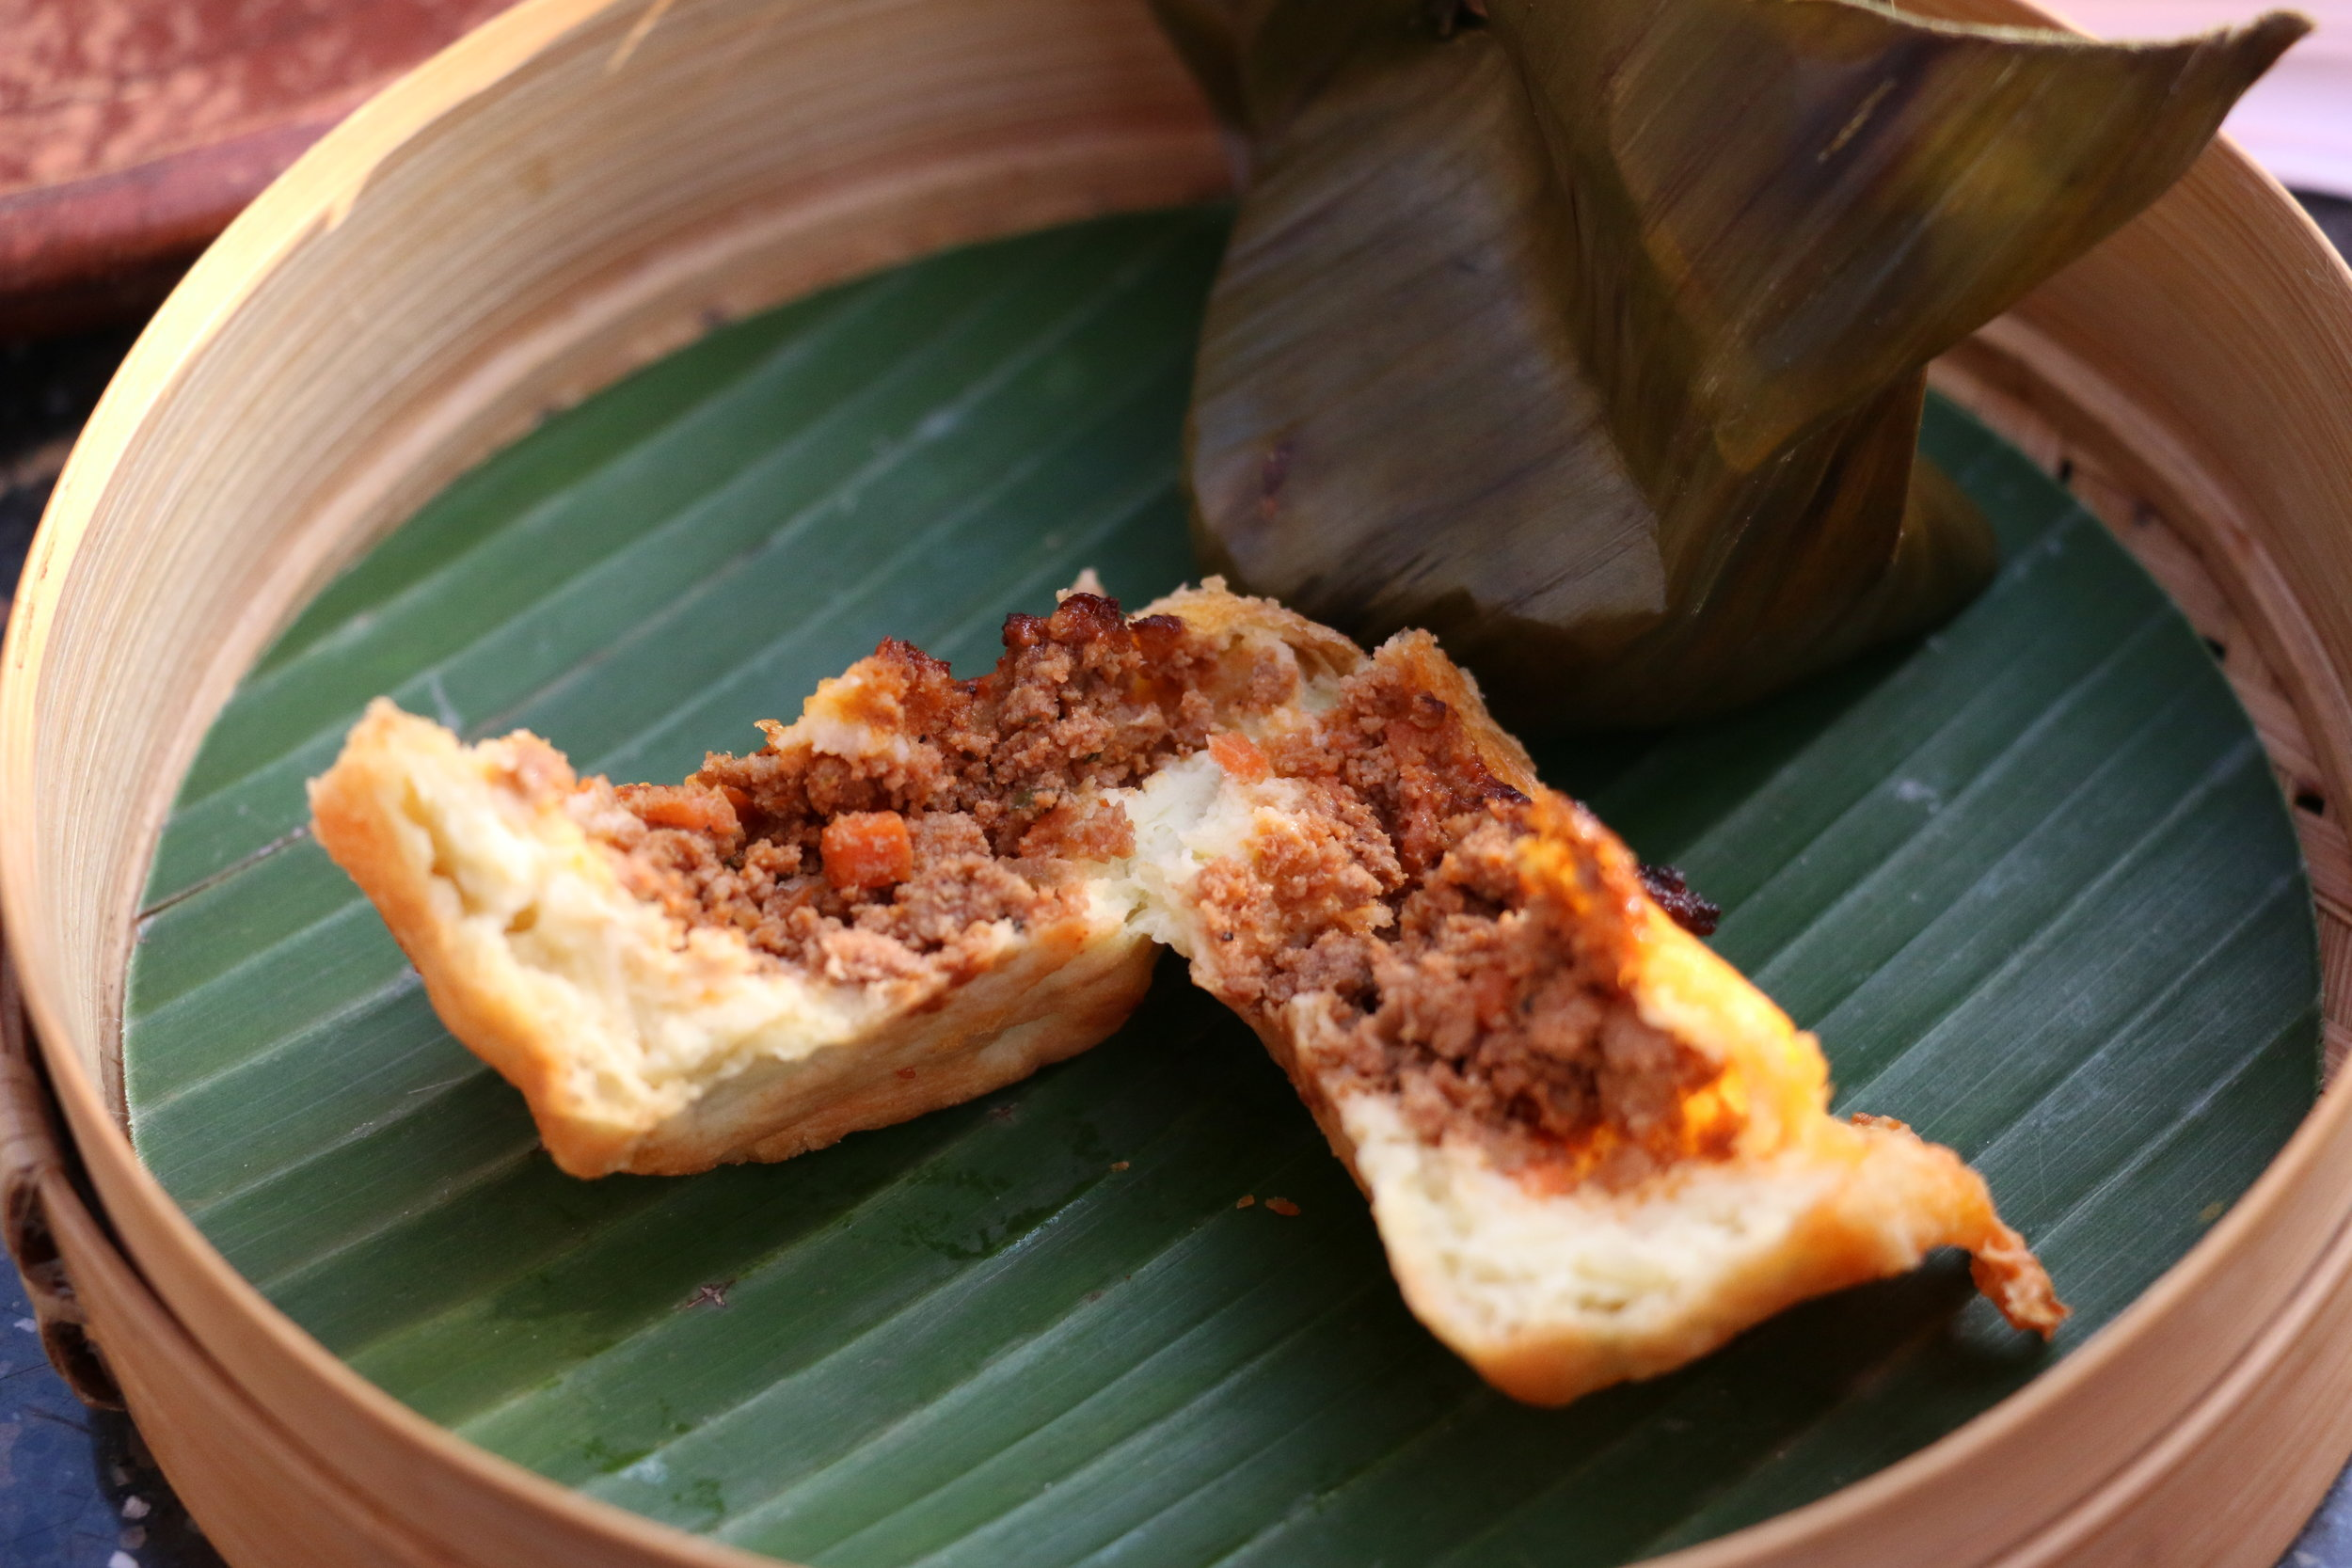 Our savory pastry filled with minced meat and carrots